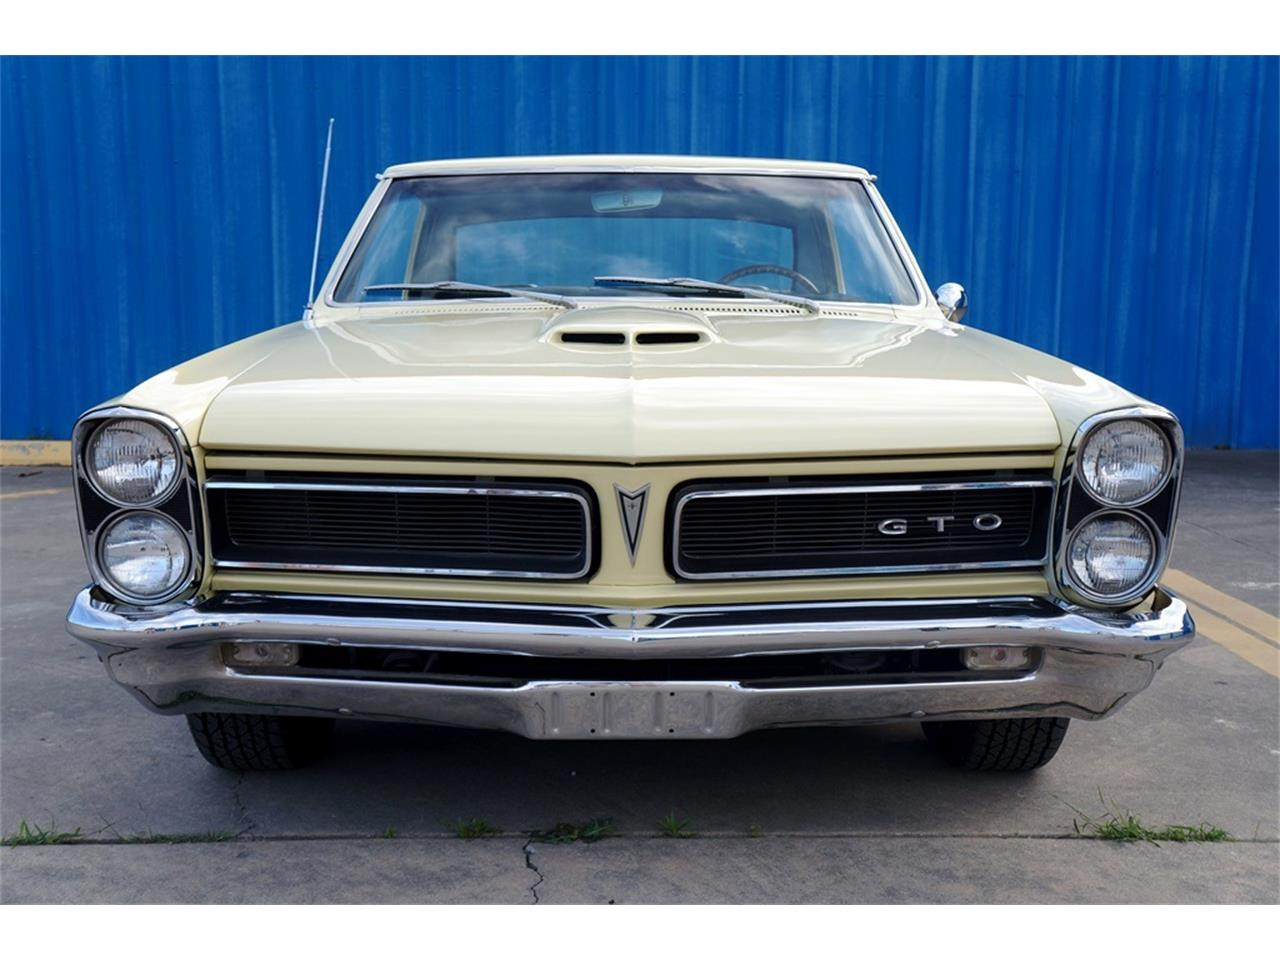 Large Picture of Classic 1965 GTO Offered by A&E Classic Cars - PWOM